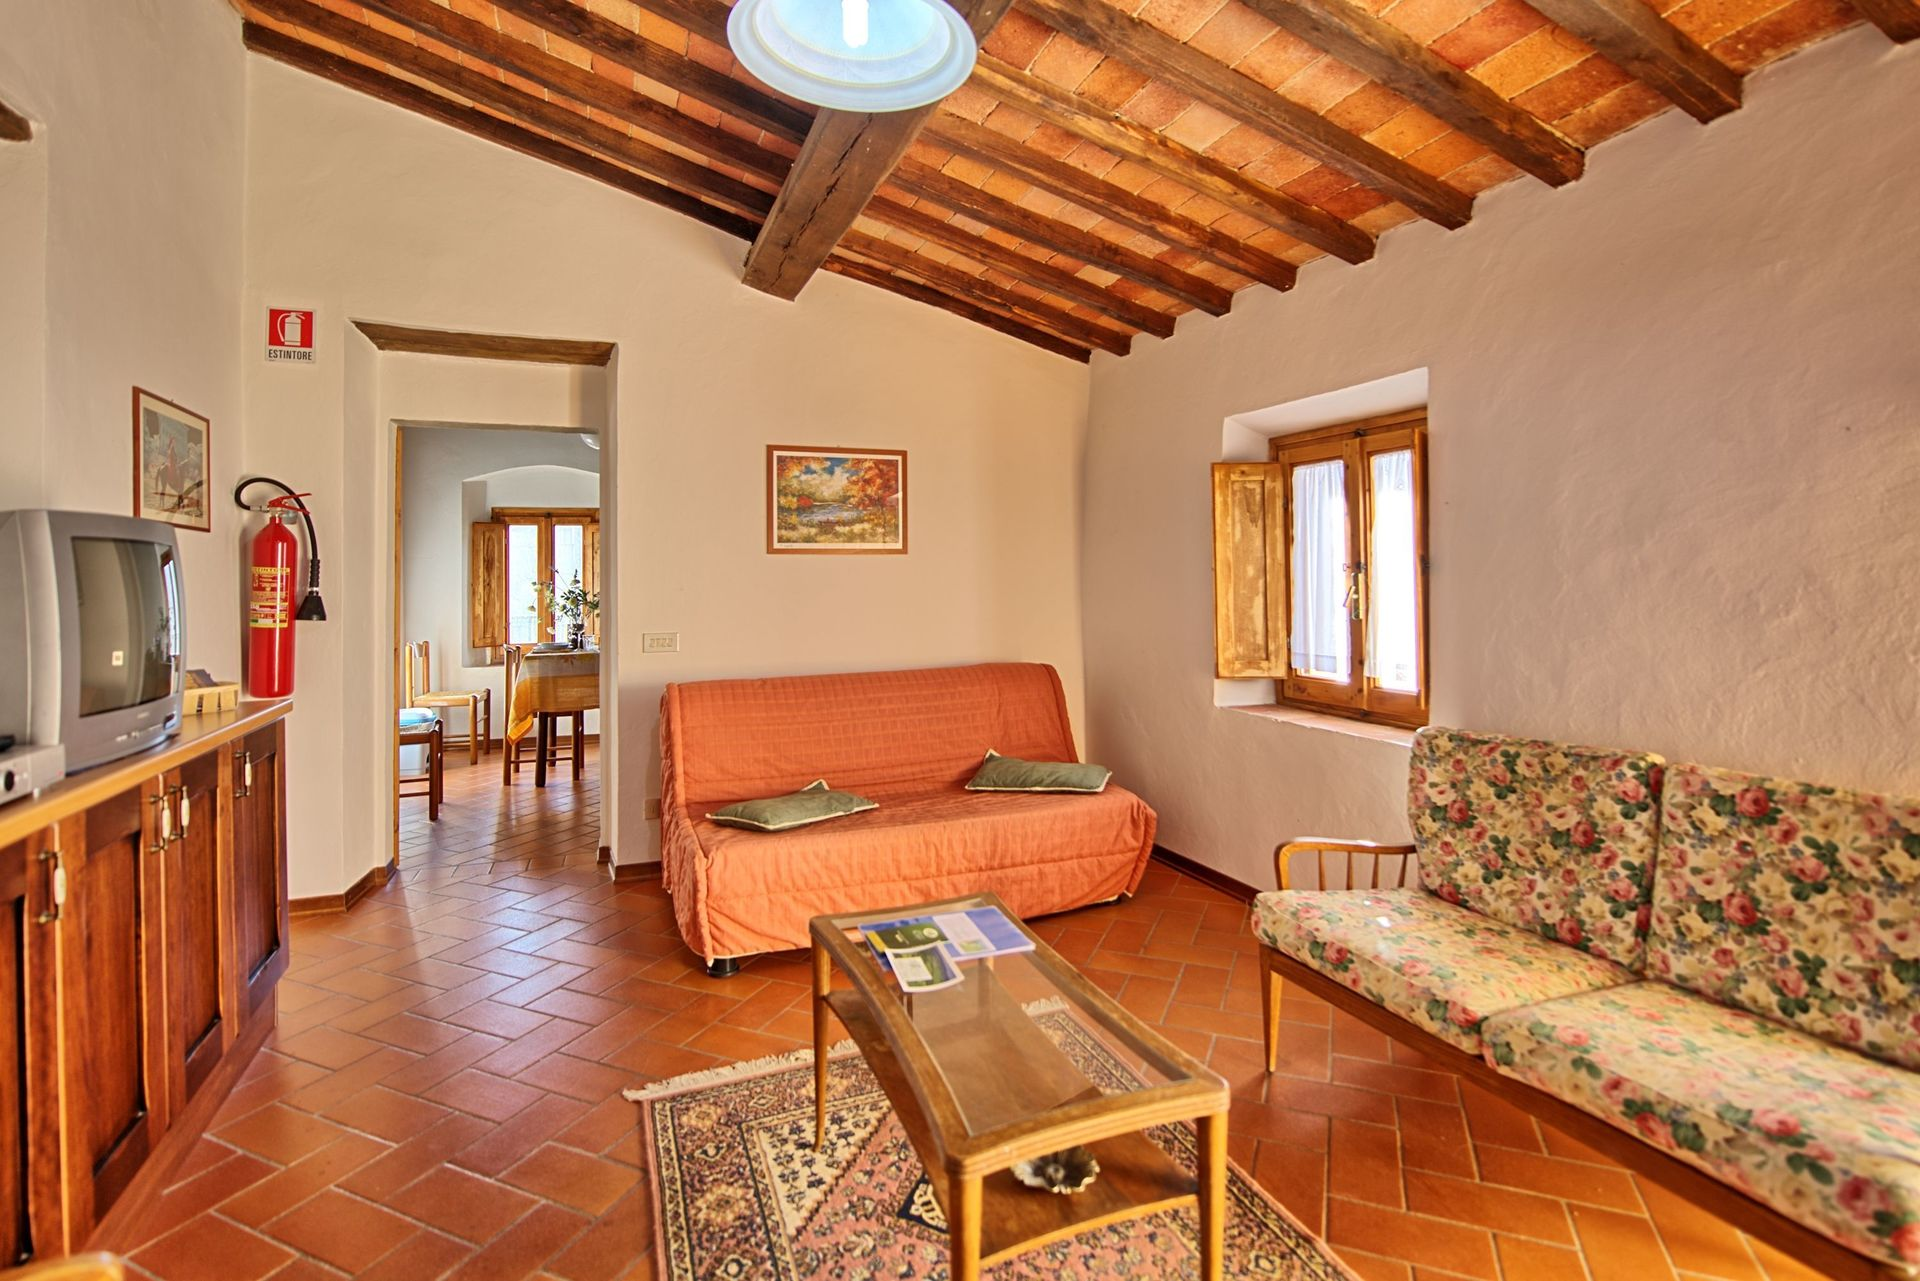 Accommodation mercatale 1 passo dei pecorai tuscany italy - Estintore in casa ...